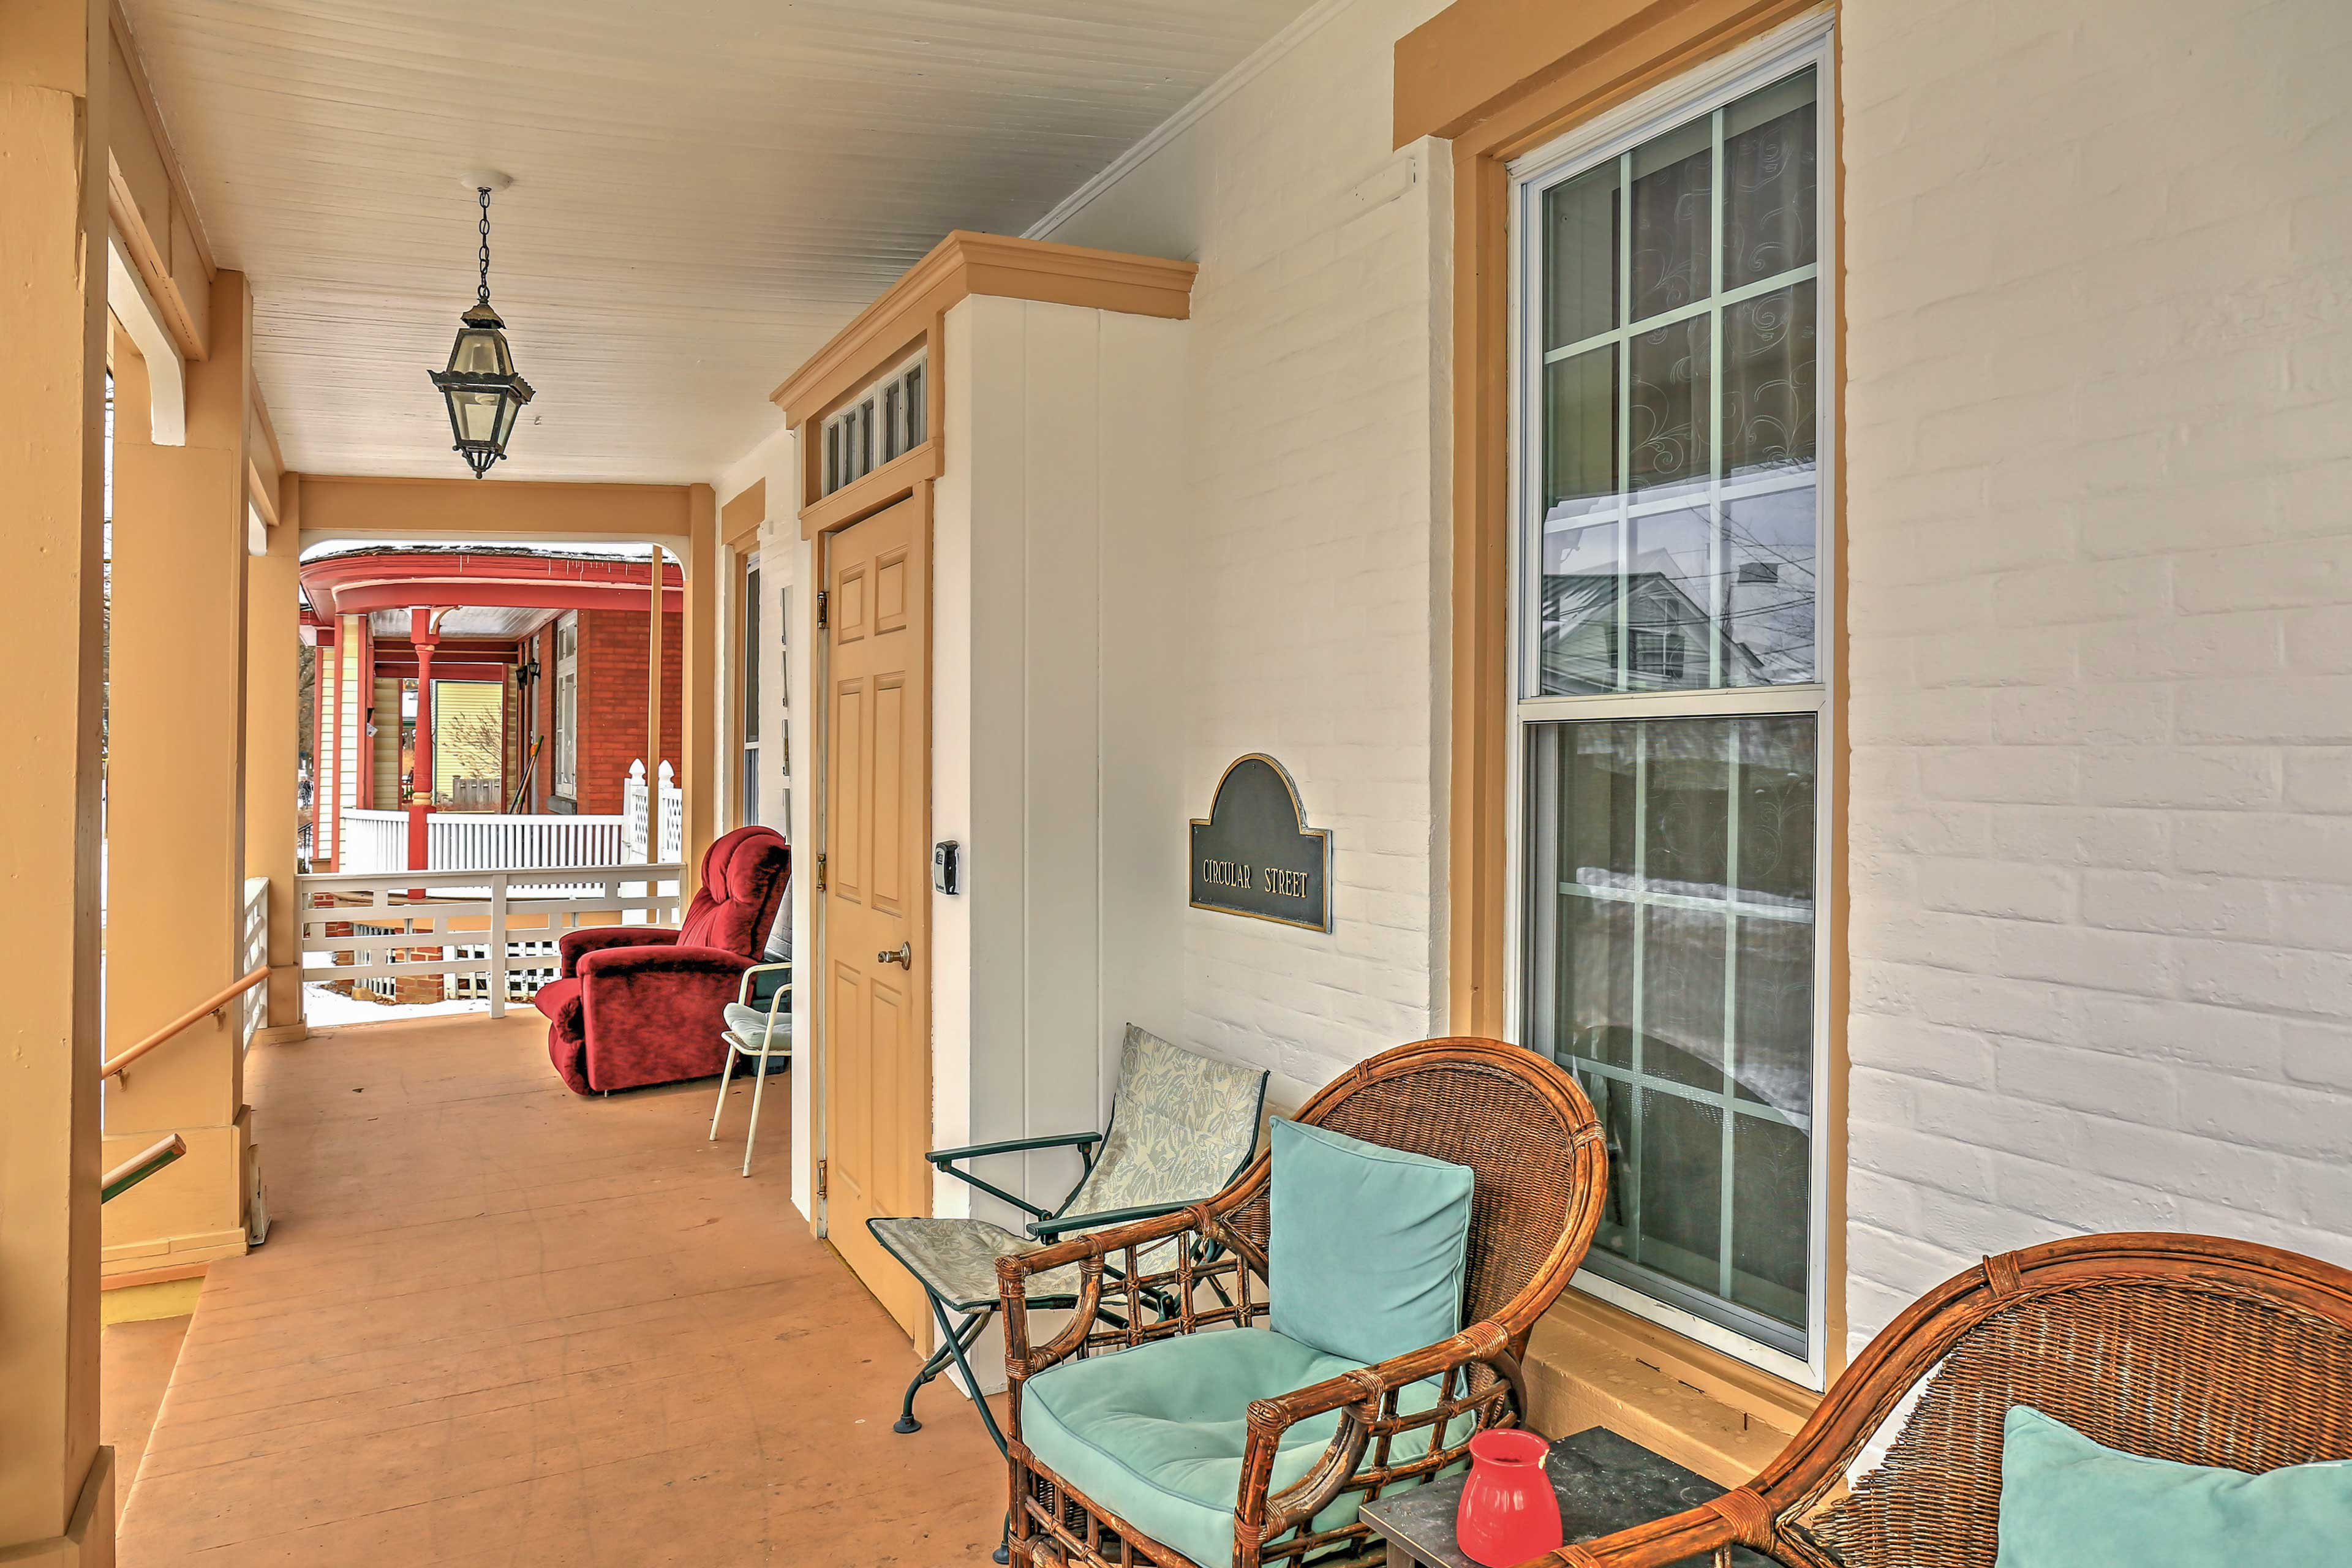 The front porch is the ideal place to sip a glass of wine.